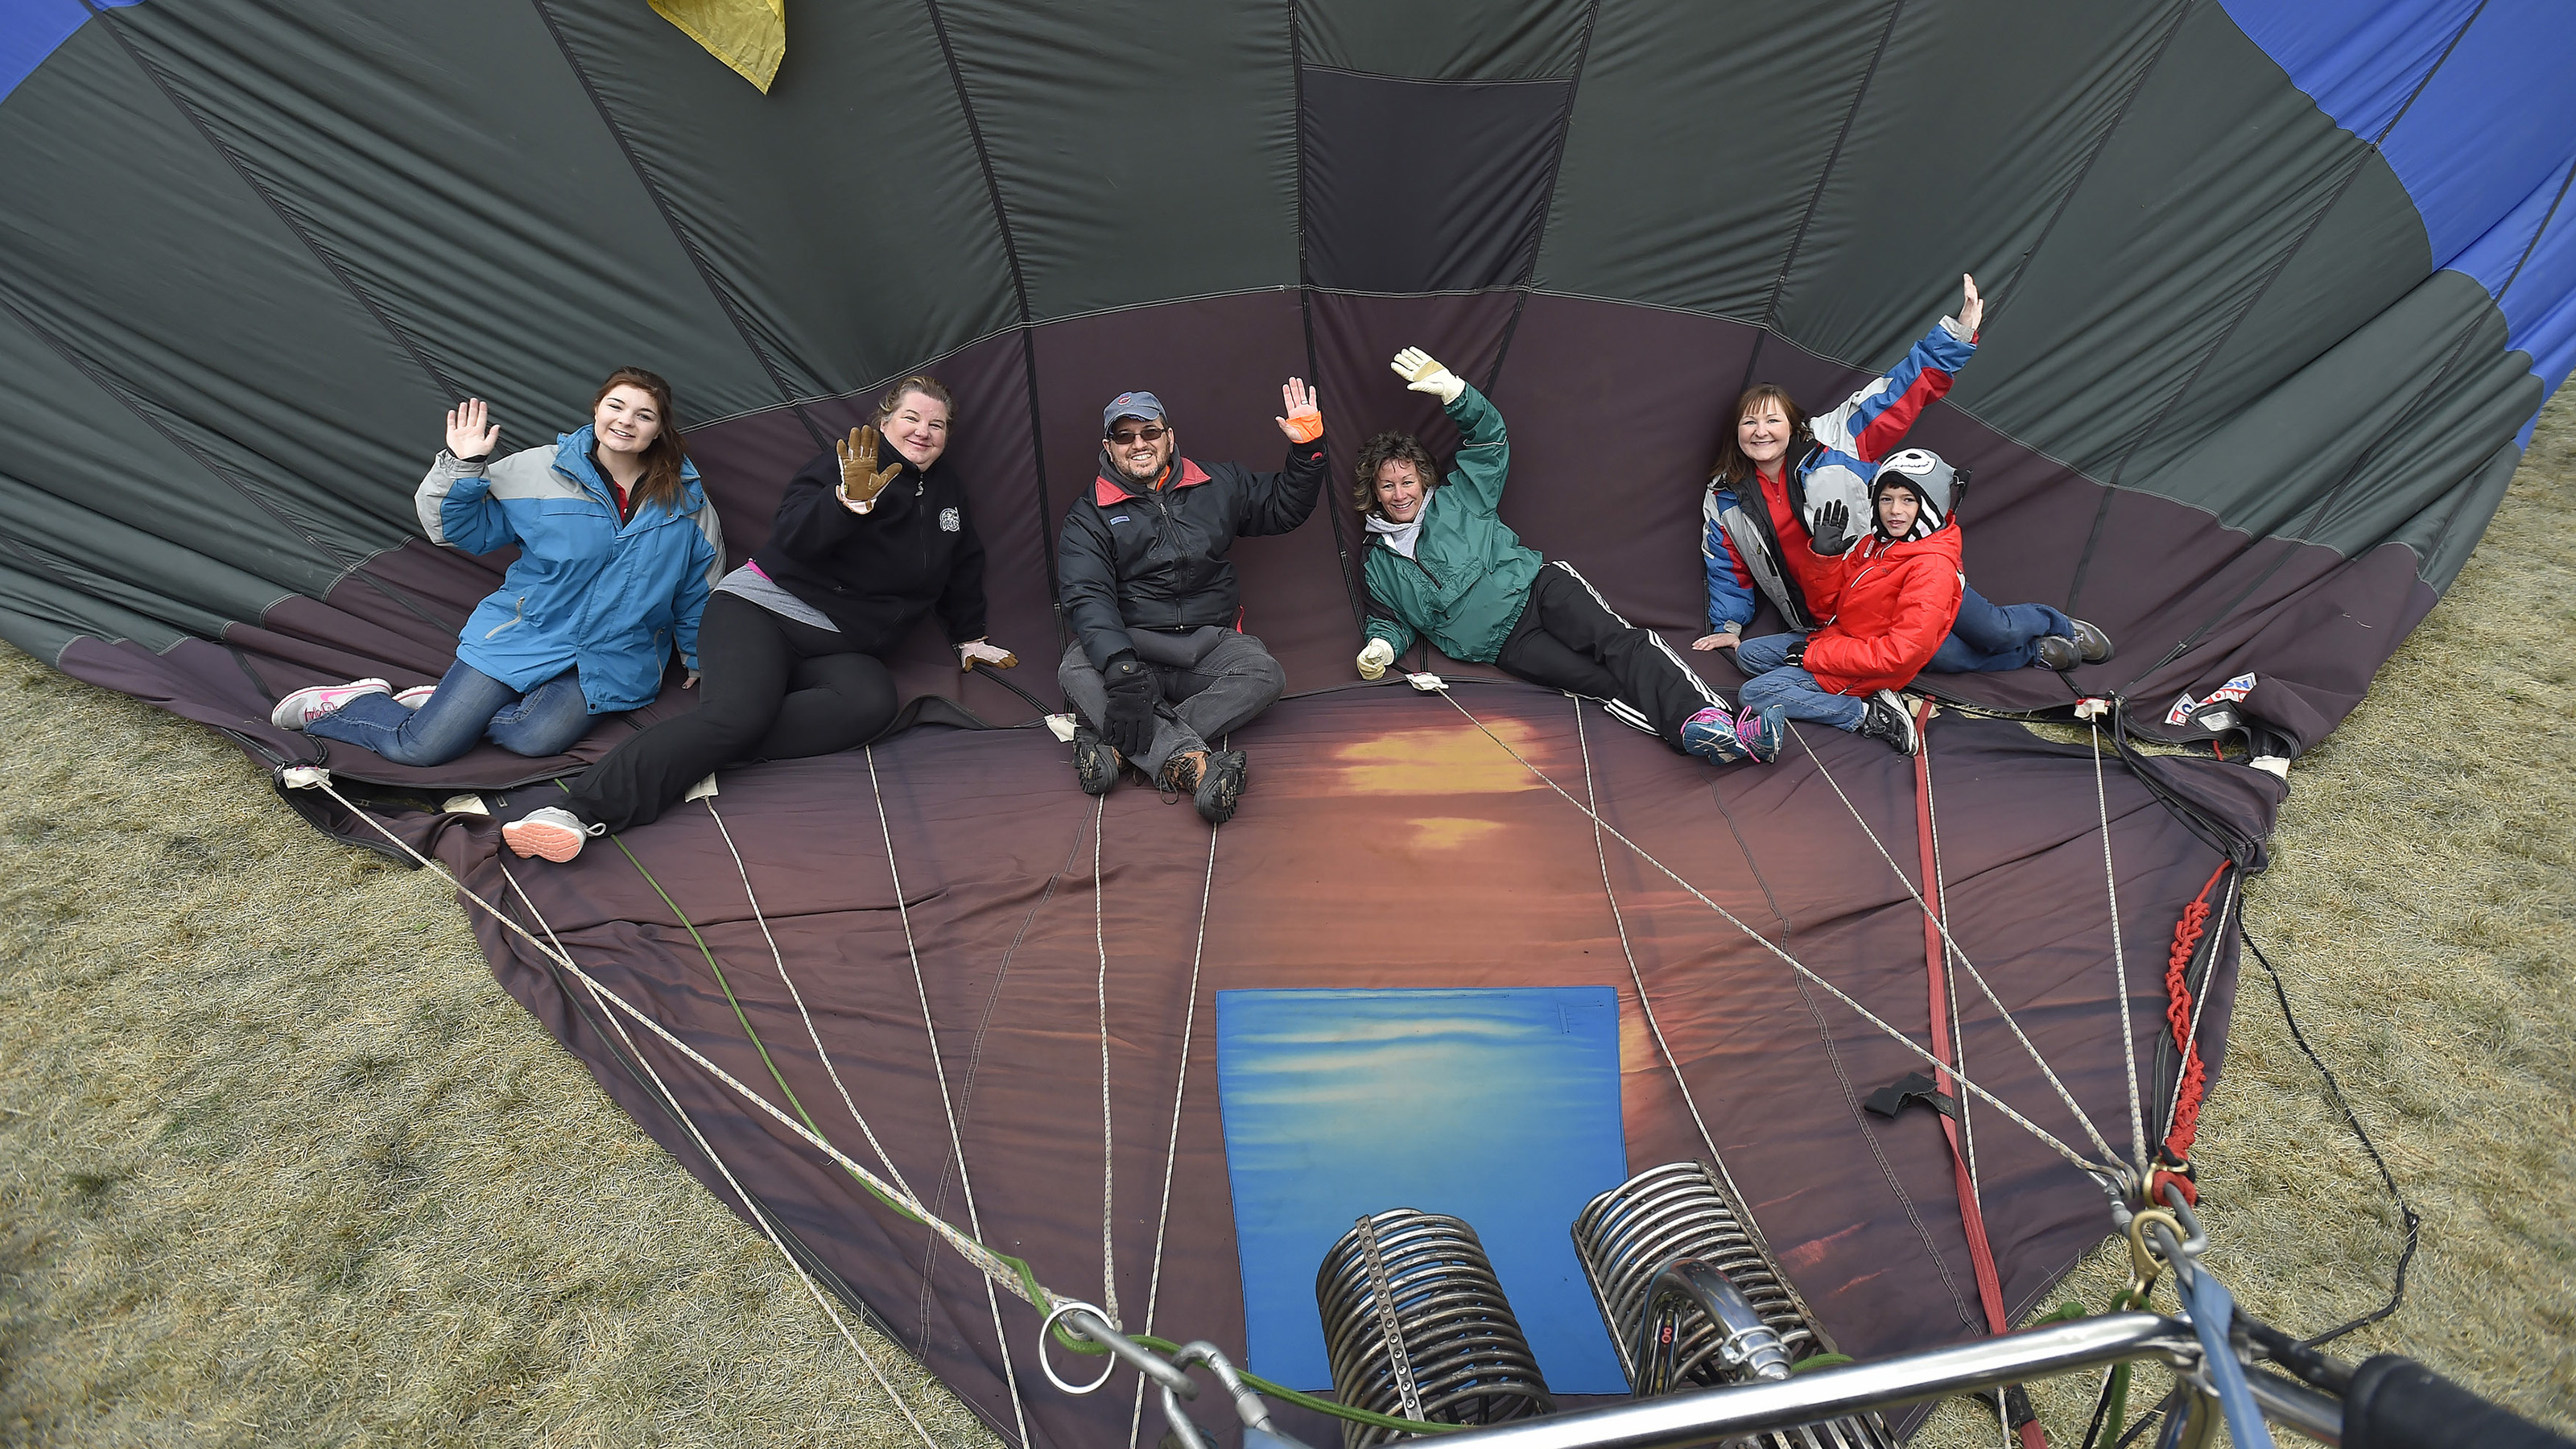 Montana balloonist Colin Graham's crew members wave while they trap hot air in the envelope behind them during the Albuquerque International Balloon Fiesta, Oct. 8. Photo by David Tulis.